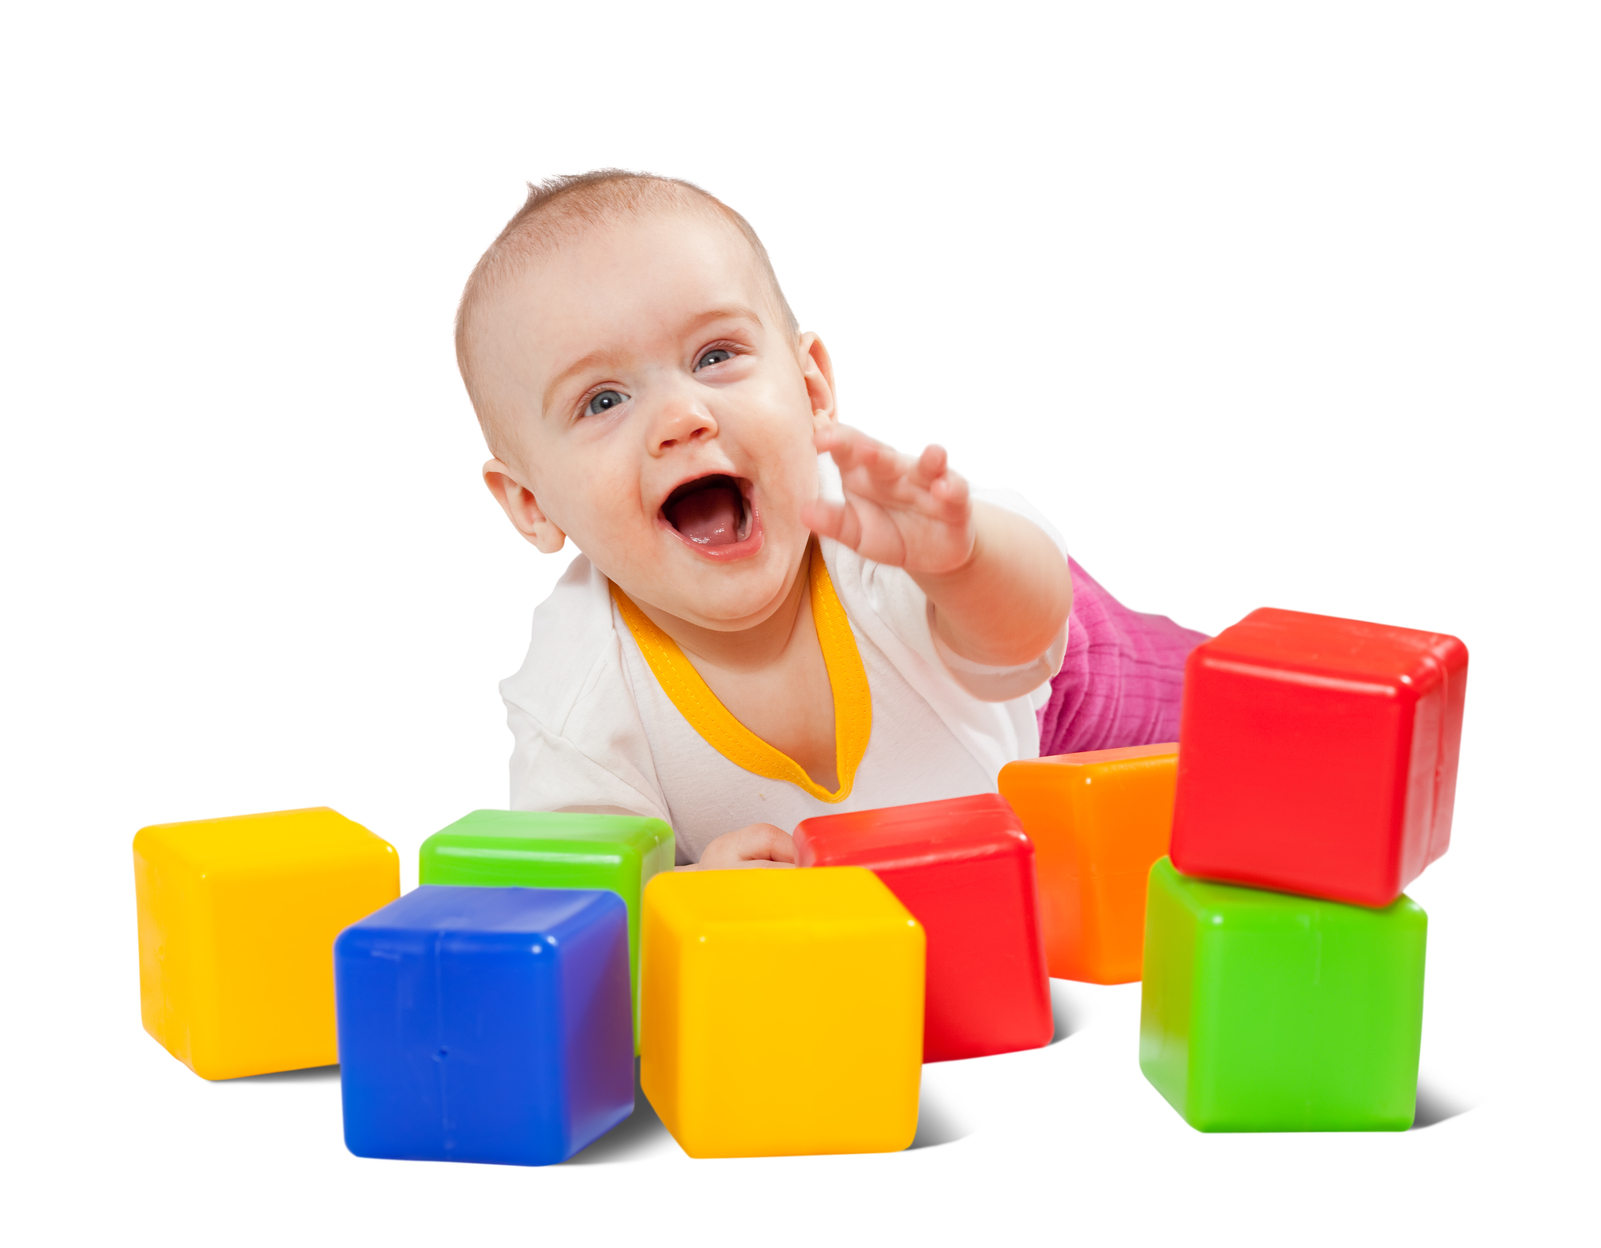 Happy baby plays  with toy blocks over white background